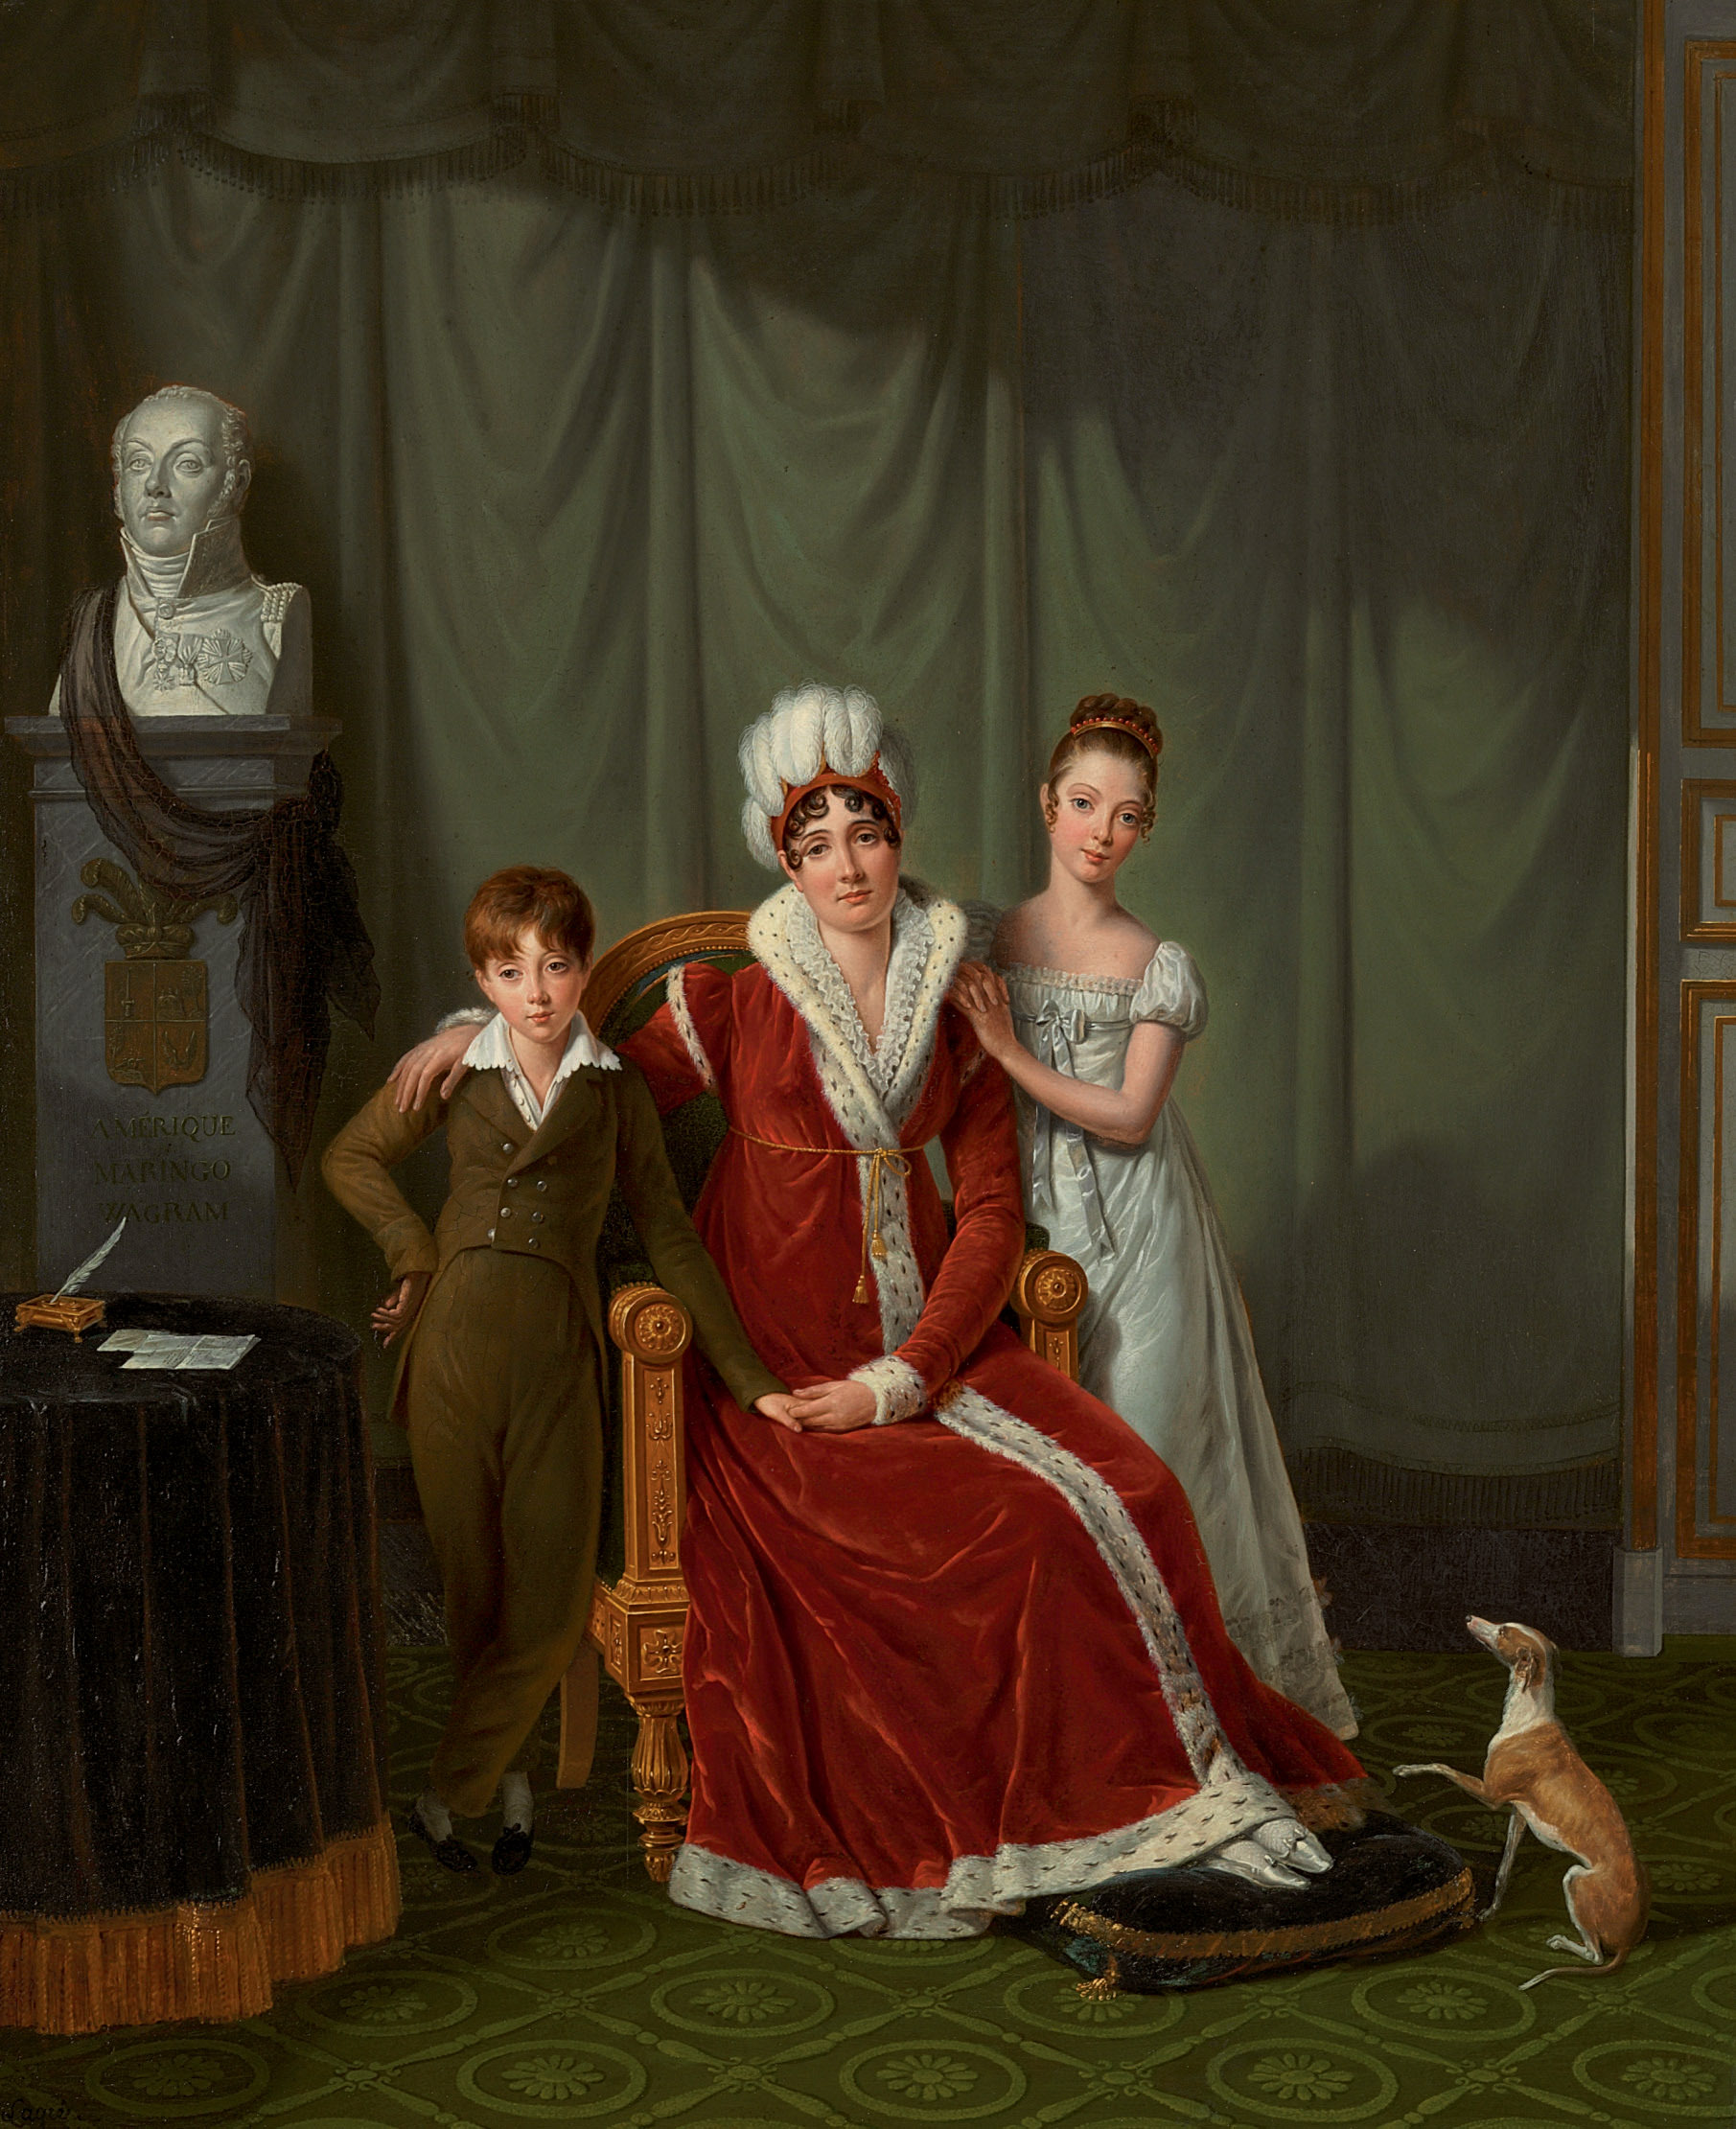 Portrait of General Baudet's wife and her two children, with a bust of the General behind